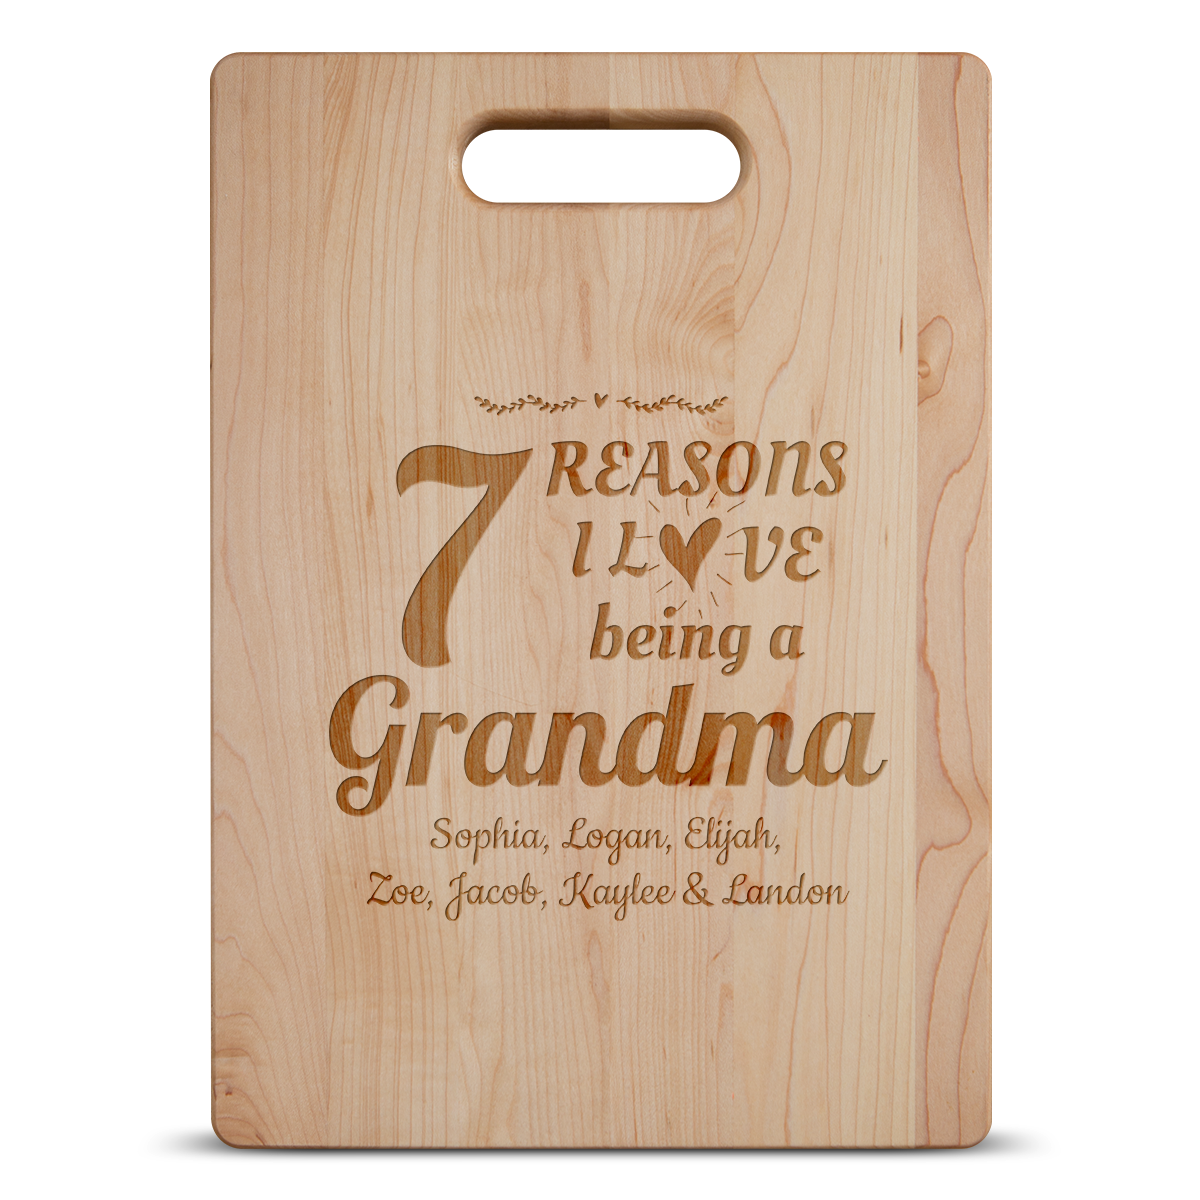 7 Reasons Grandma Cutting Board